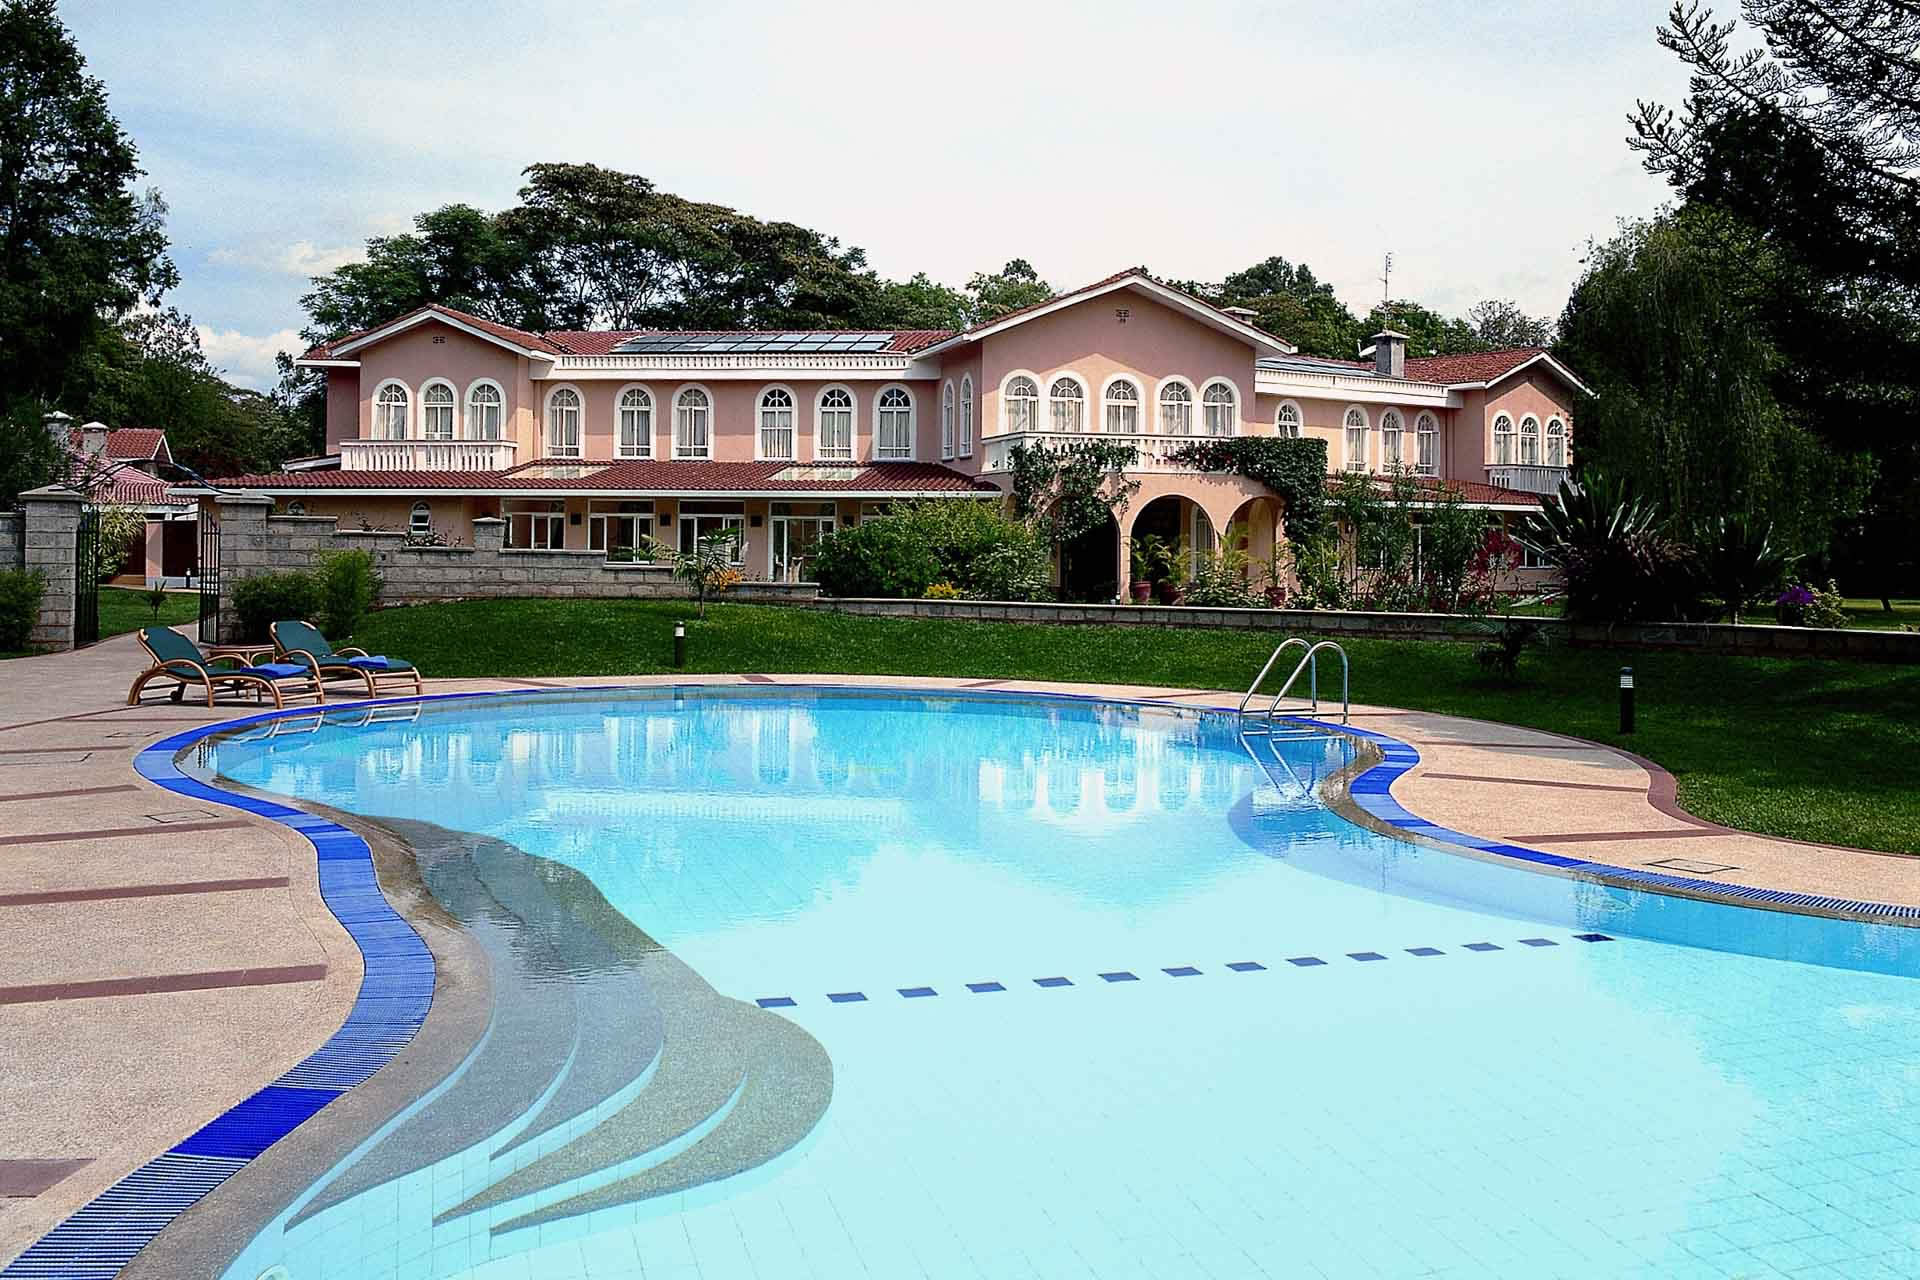 House of Waine garden and pool, Nairobi, Kenya